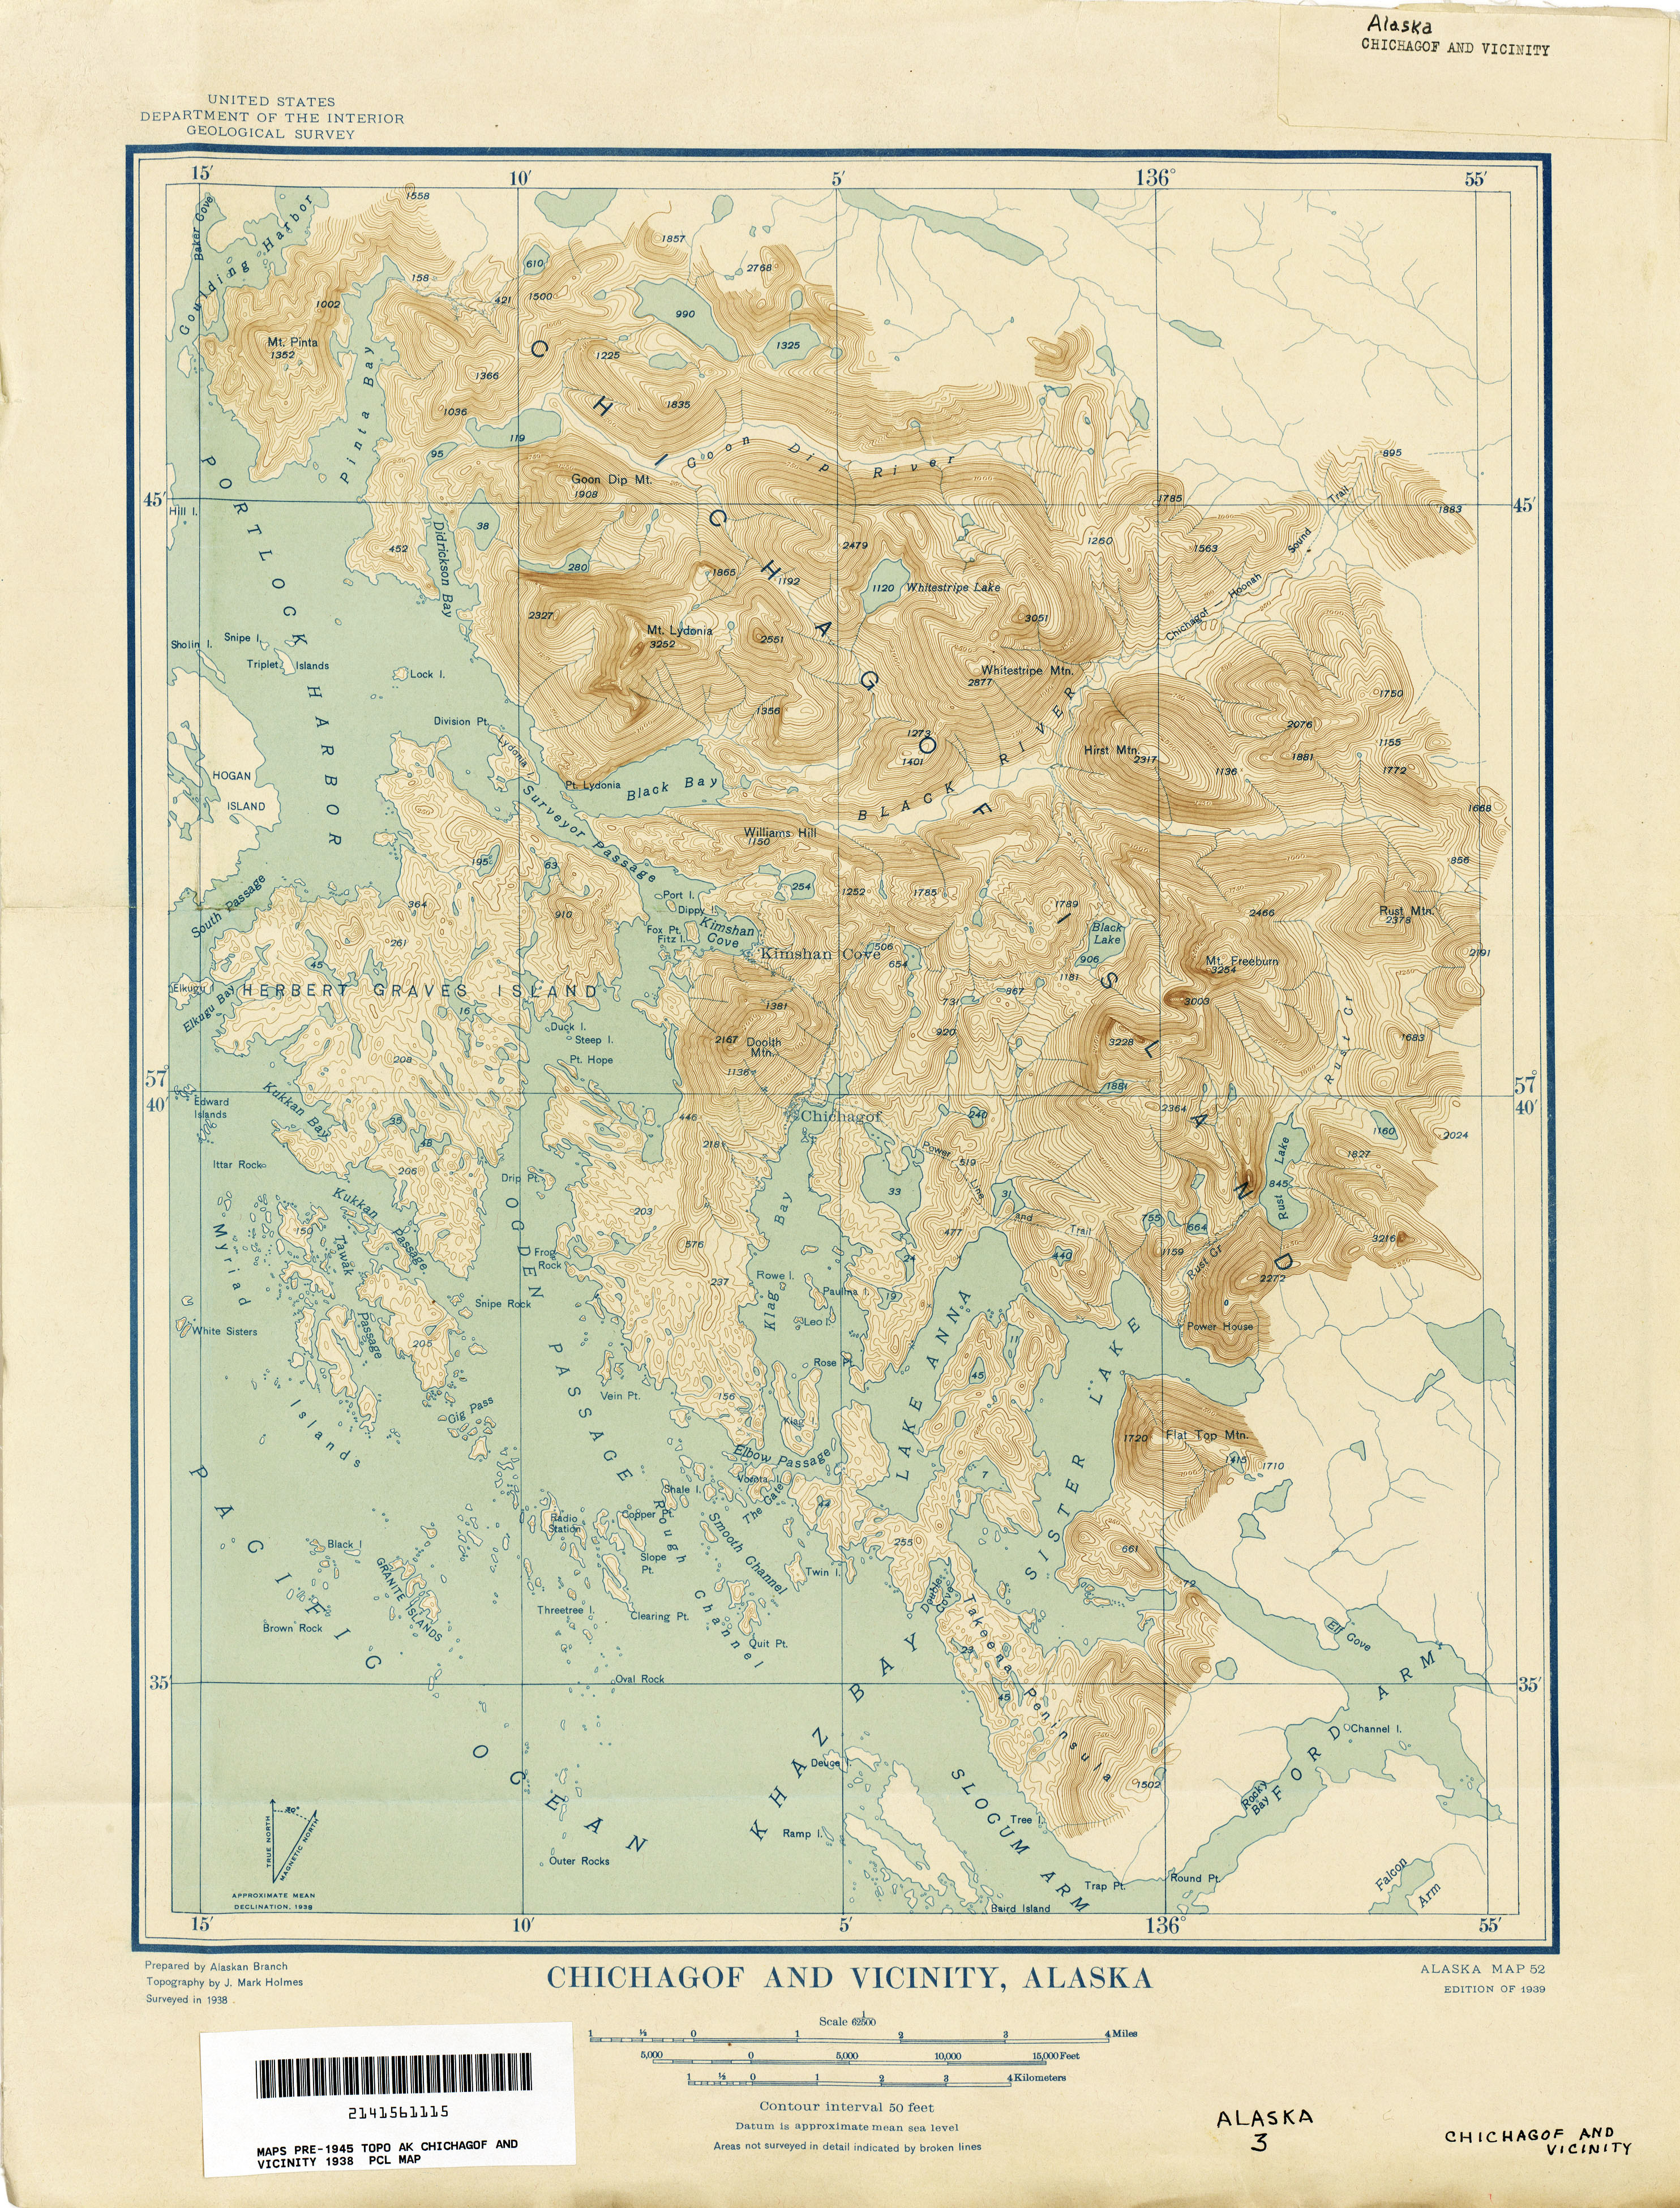 Alaska Historical Topographic Maps - Perry-Castañeda Map Collection ...